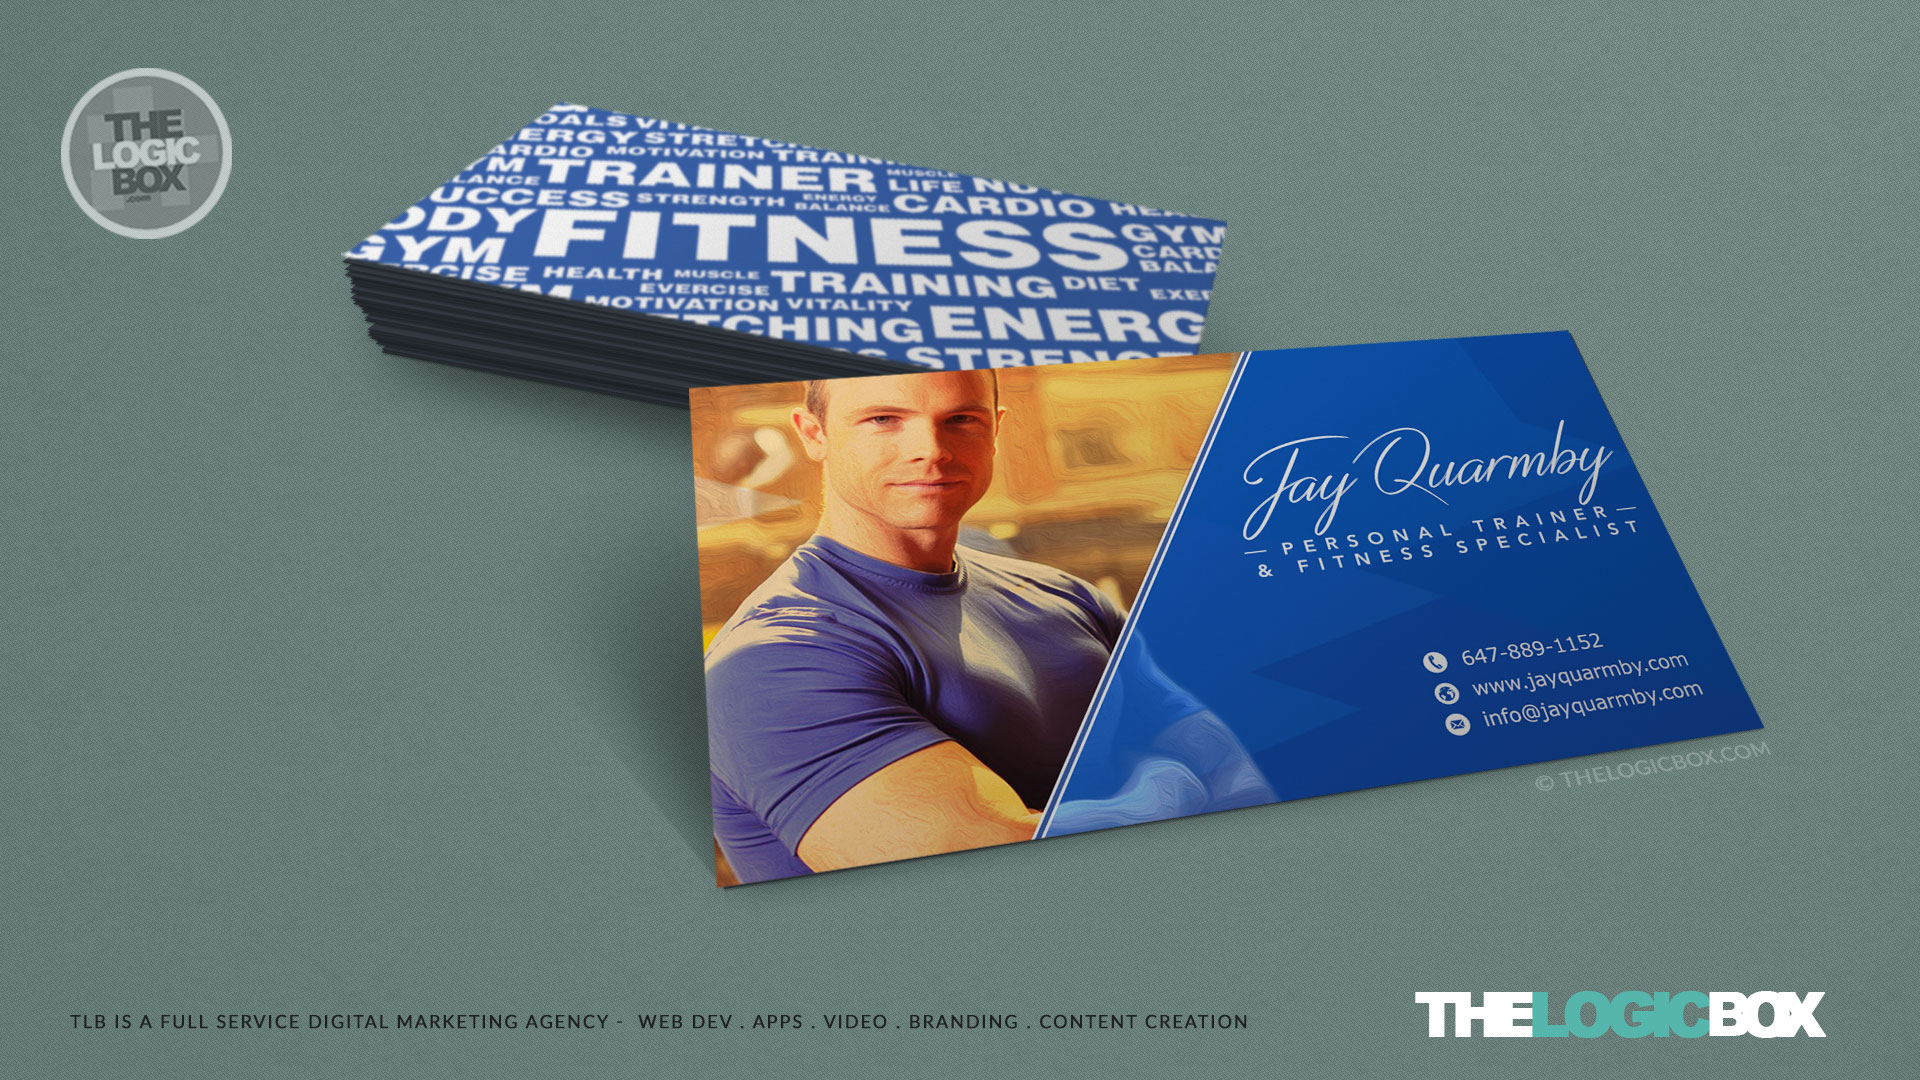 business-card-presentation-mockup-psd-1920x1080-thelogicbox-jay-Quarmby-fitness